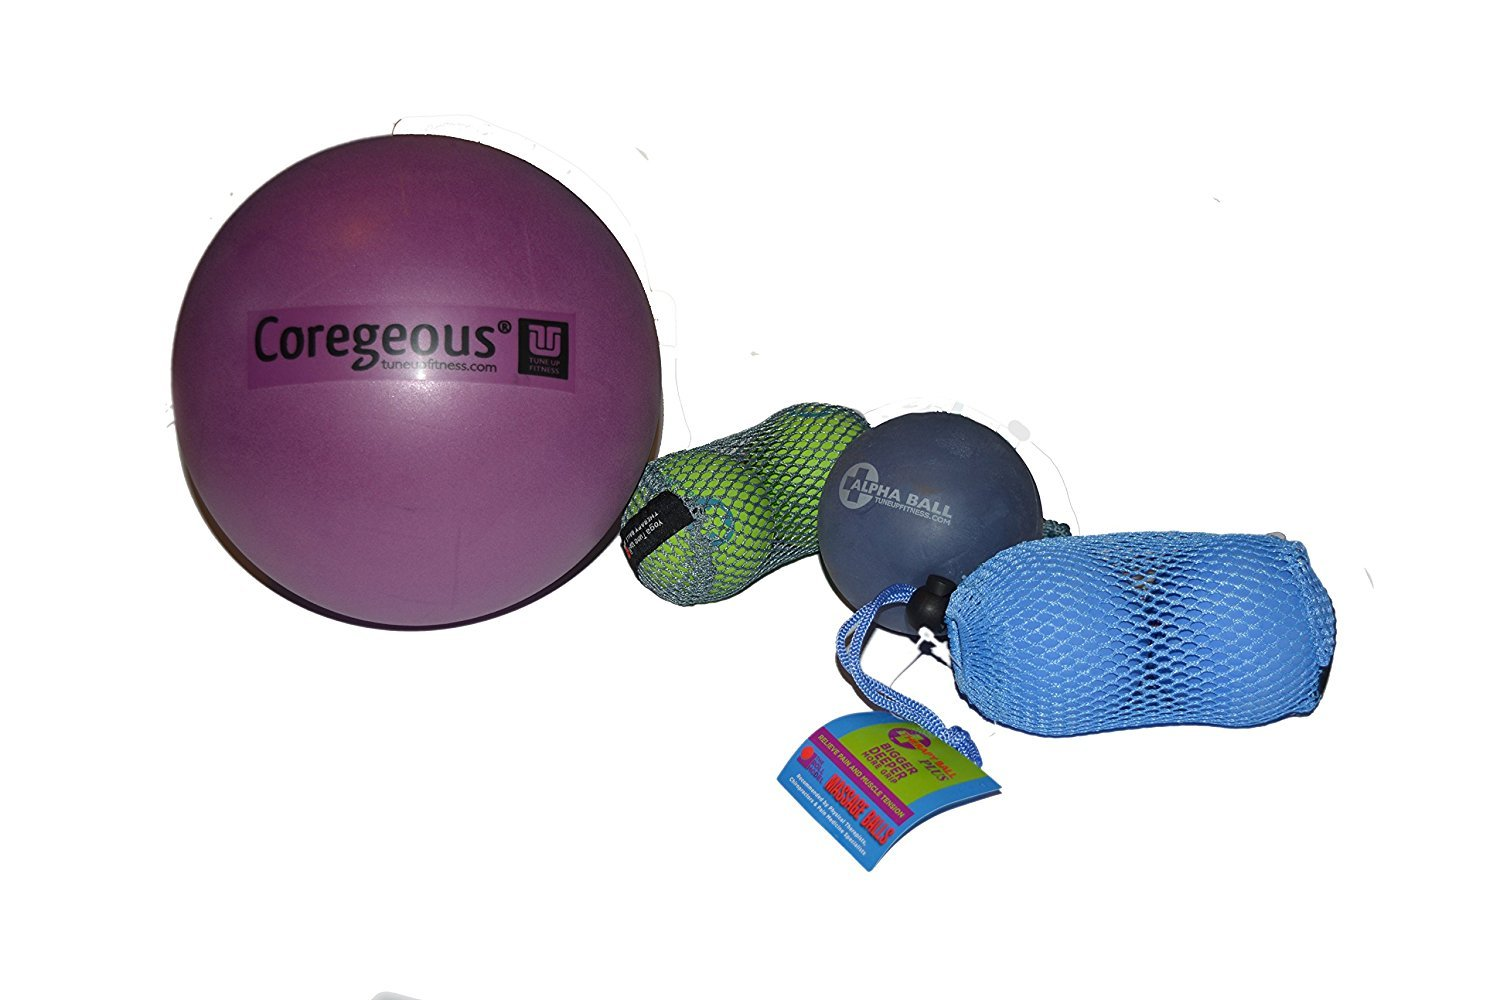 Yoga Tune Up Set of Various Ball Sizes and Colors - original tune up balls, PLUS balls, ALPHA ball and Corgeous Ball With coupon via email for 20% off any Simply Essential Solutions item